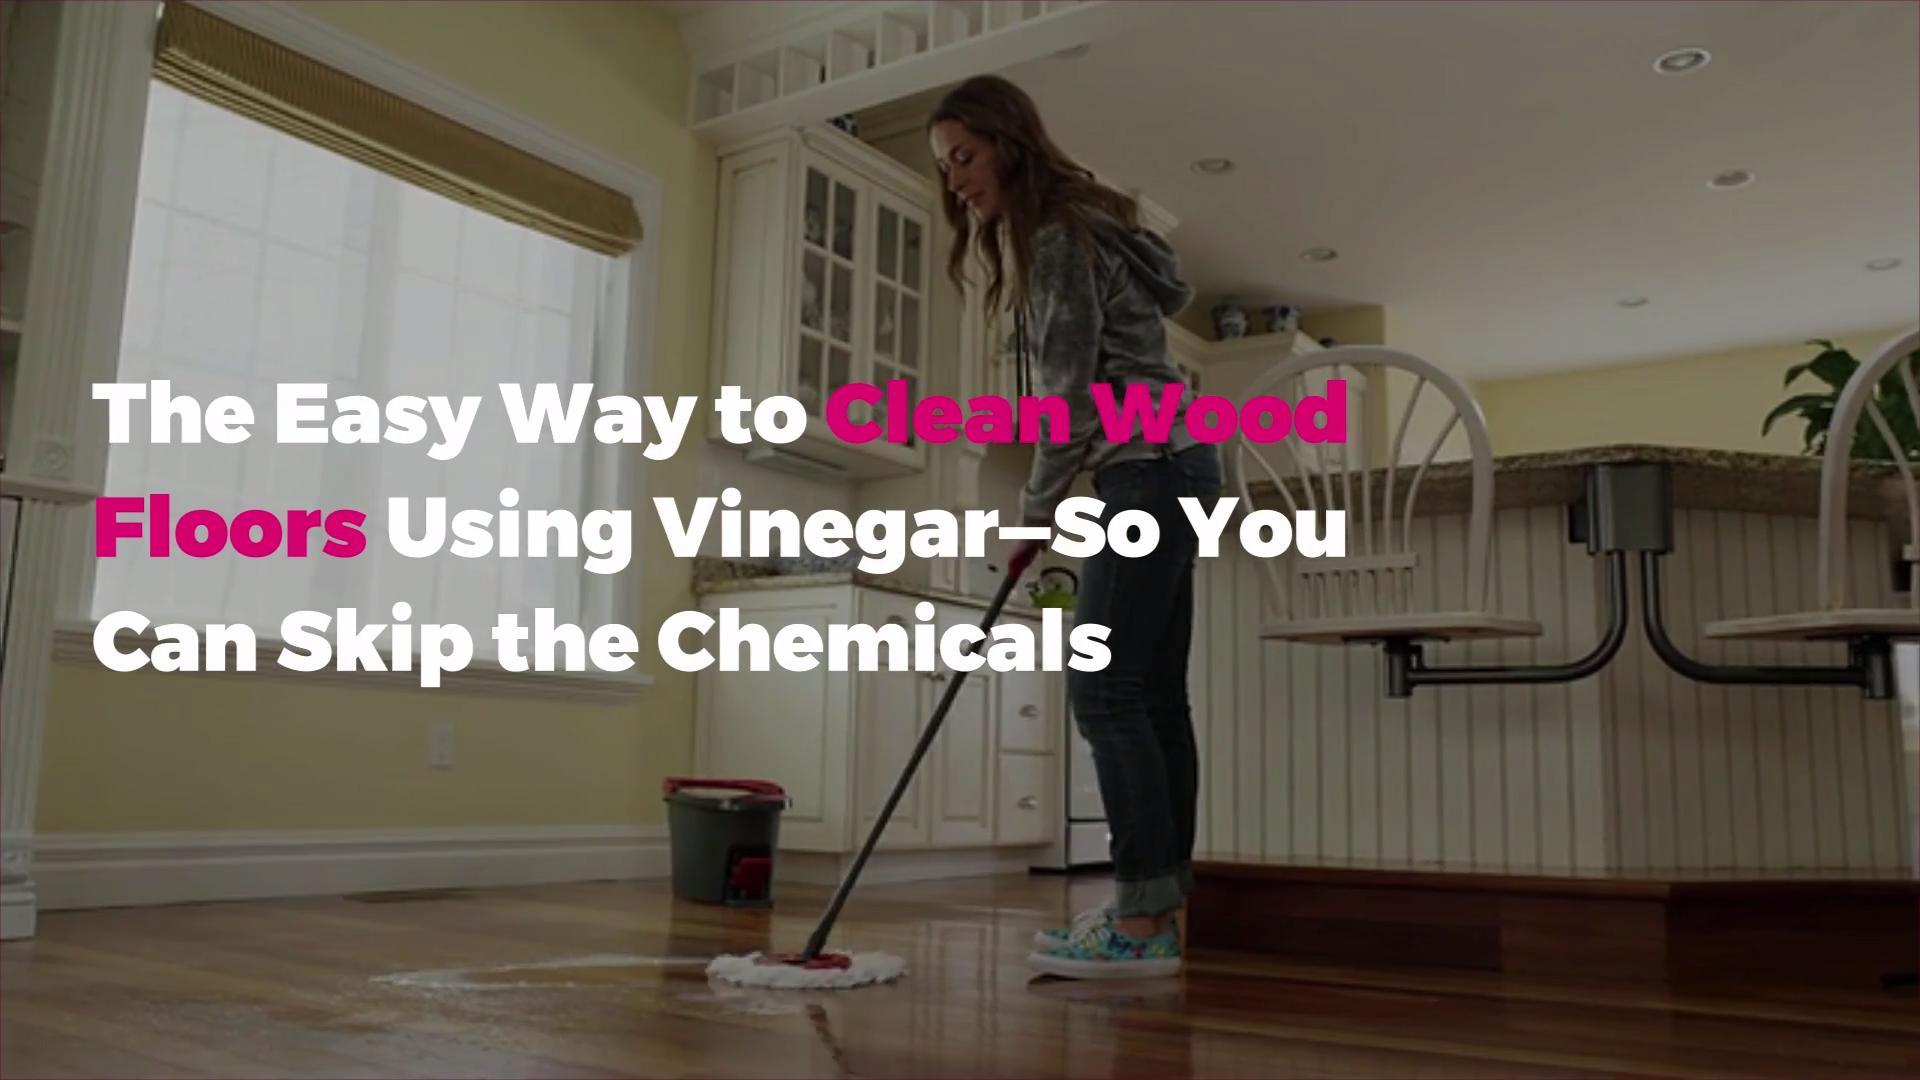 Cleaning Wood Floors With Vinegar Is